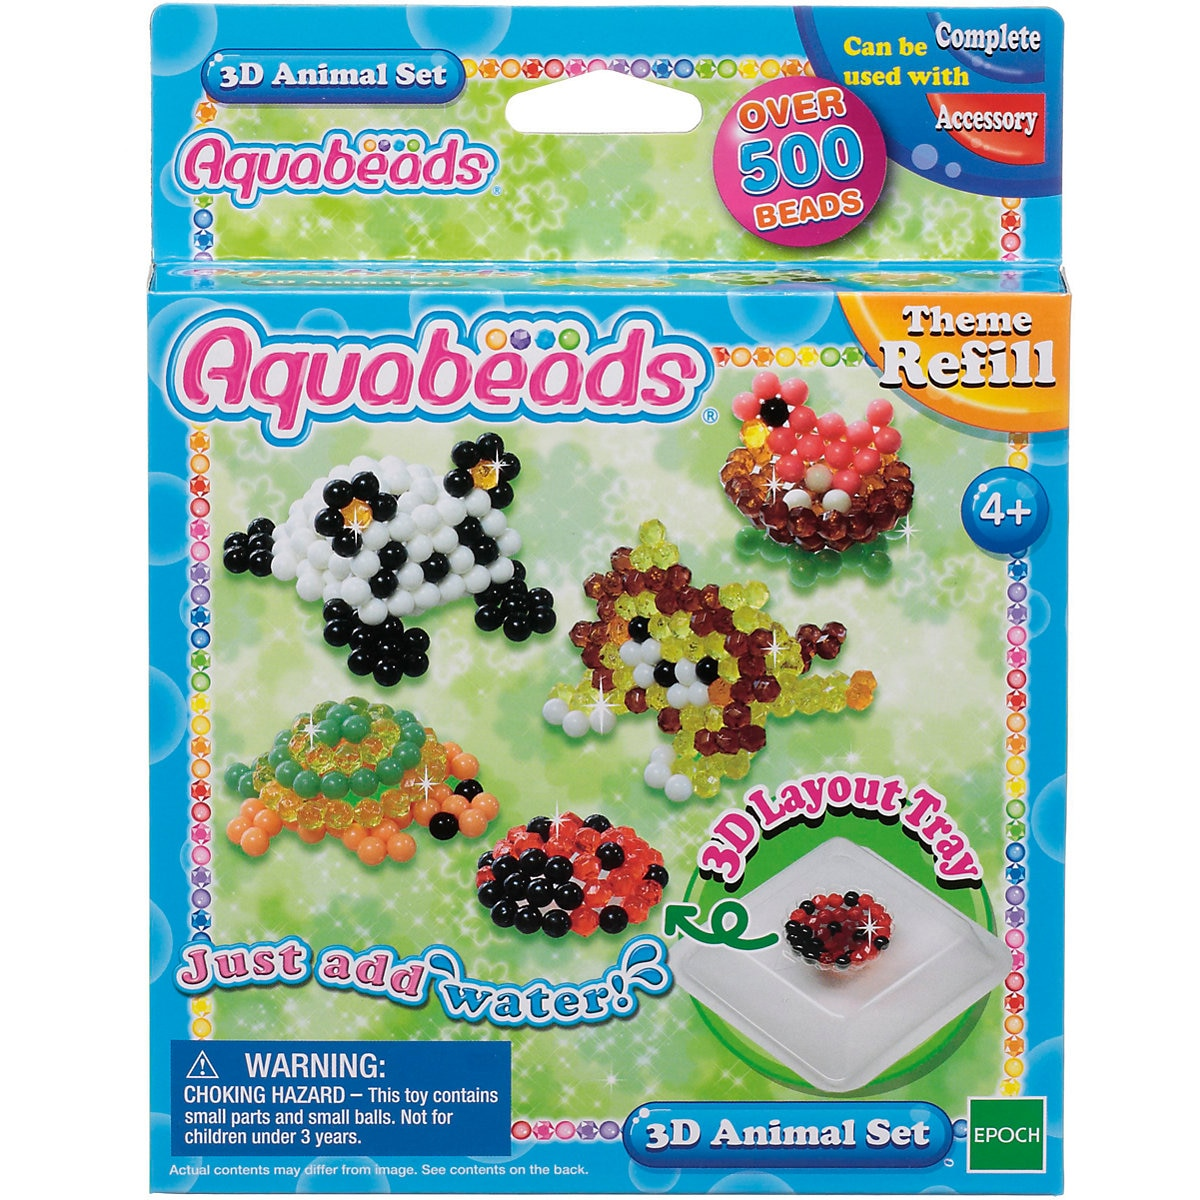 Aquabeads Beads Toys 7236011 Creativity Needlework For Children Set Kids Toy Hobbis